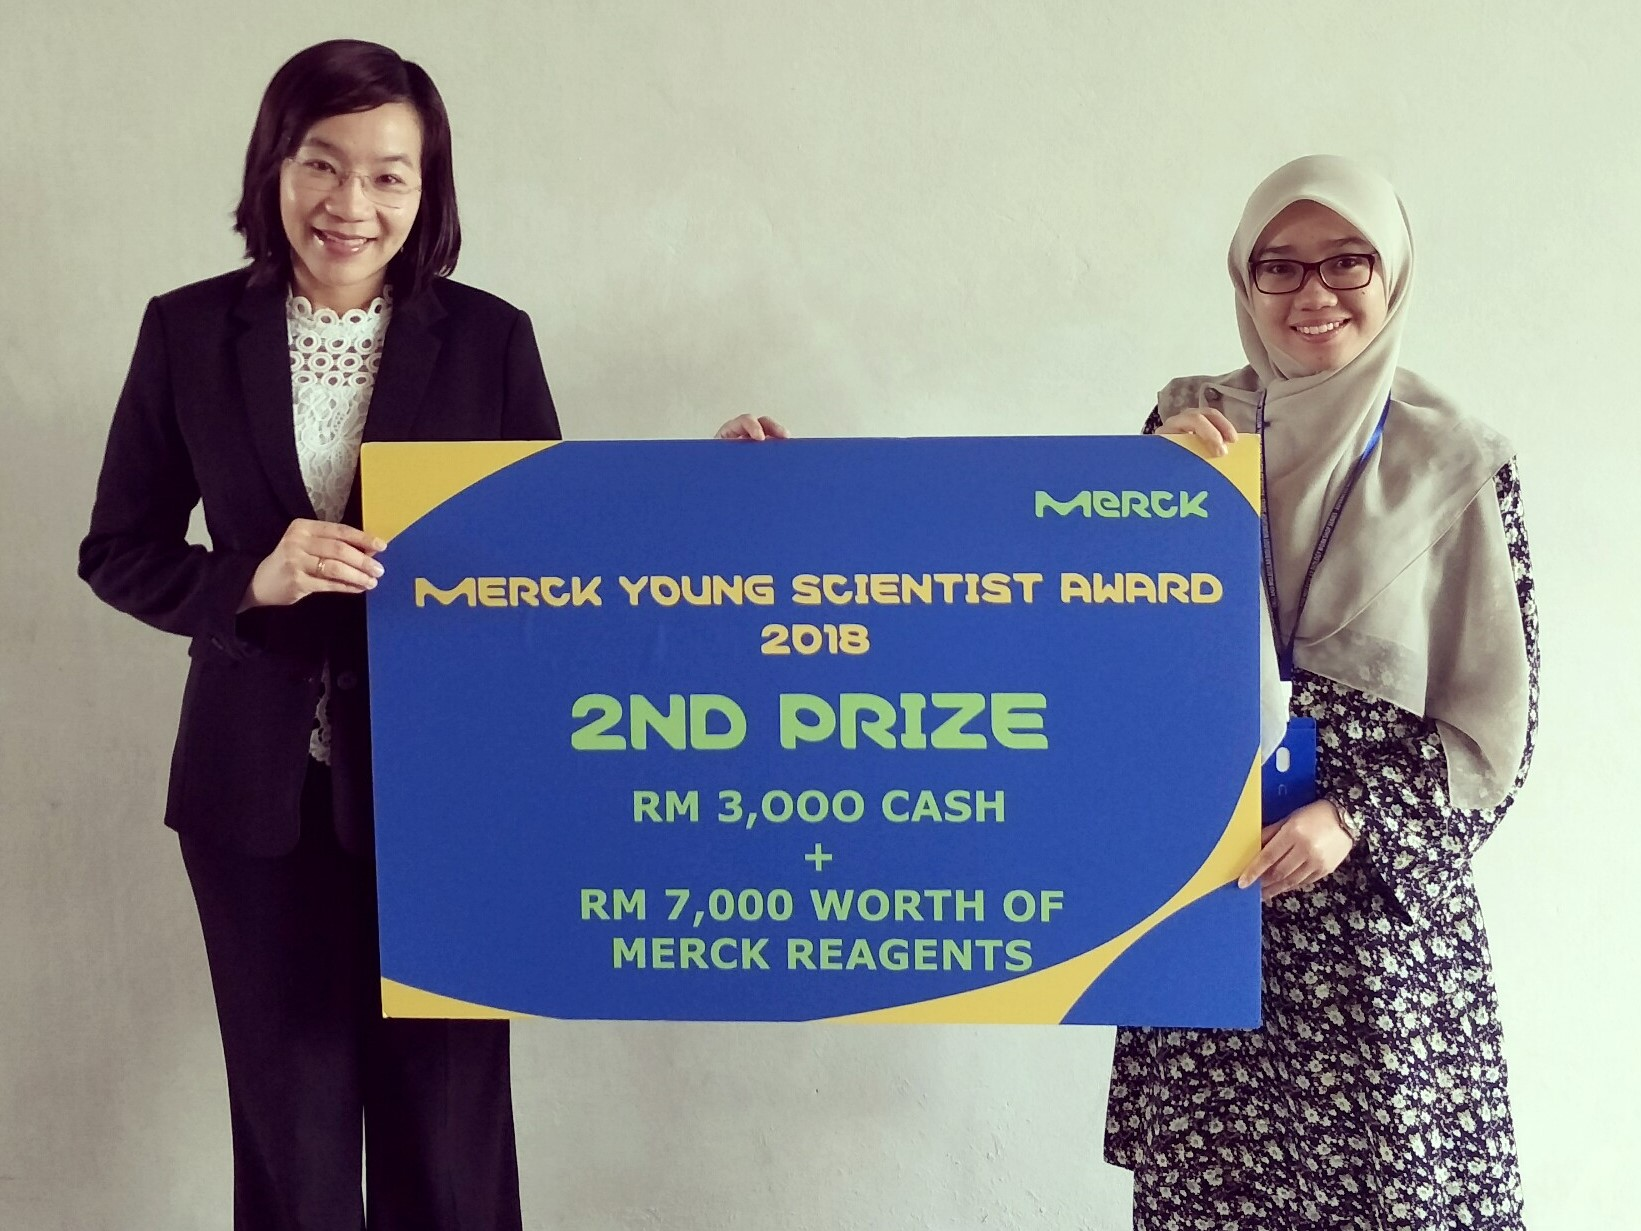 MERCK Young Scientist Award 2018